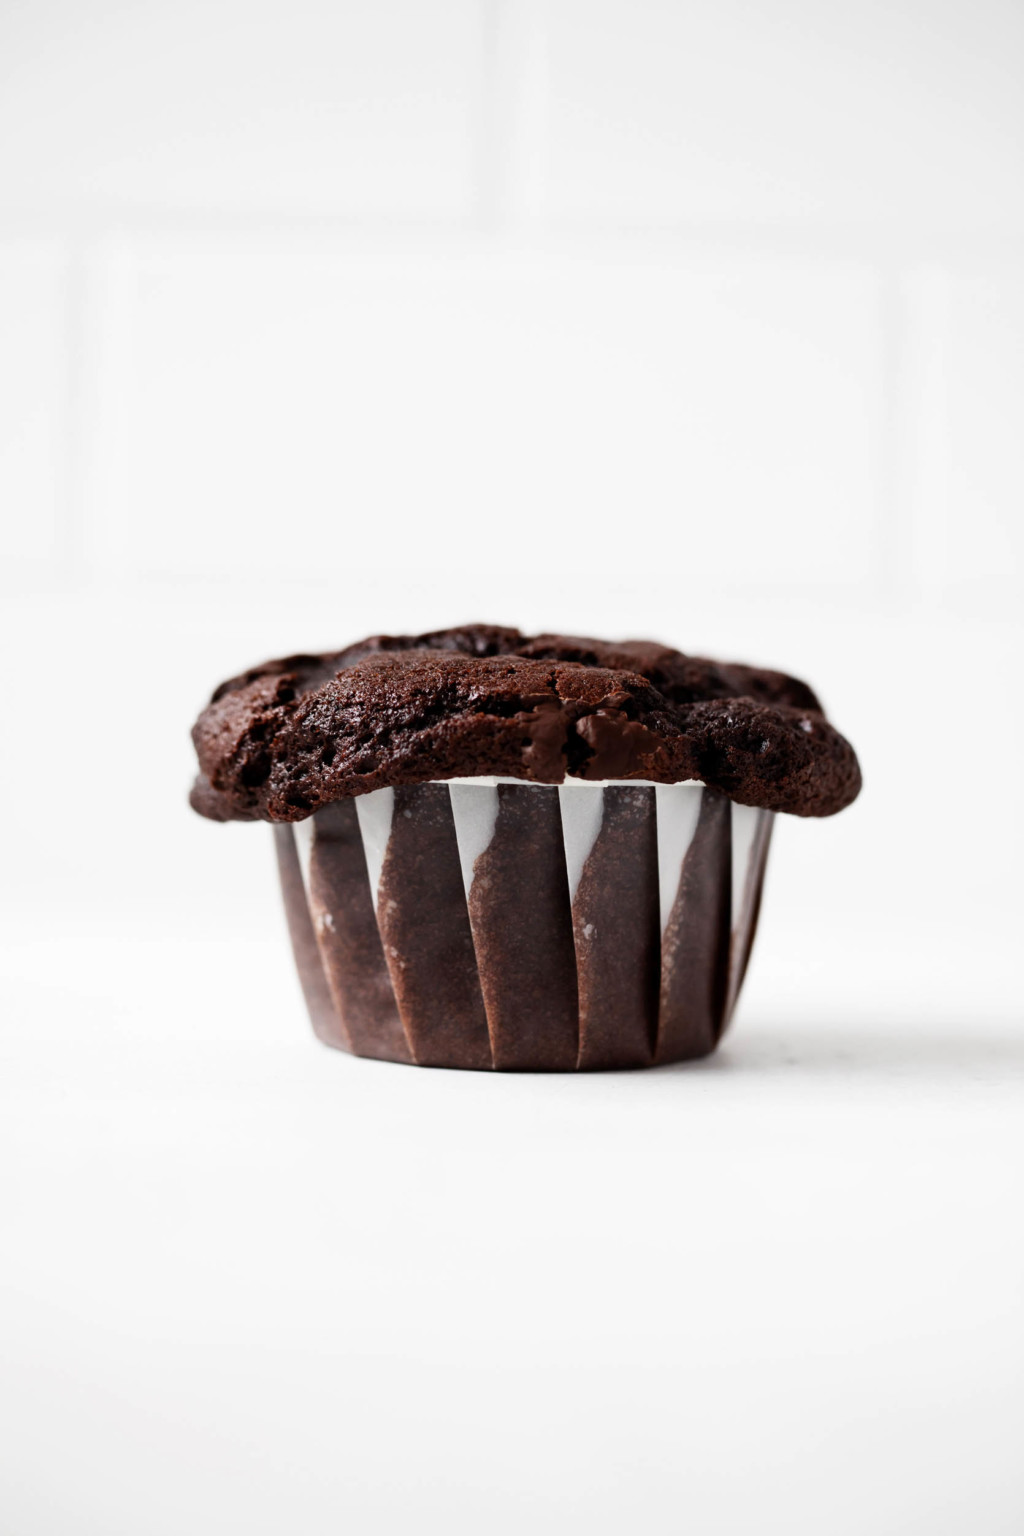 A single vegan chocolate muffin has been baked in a cupcake liner.